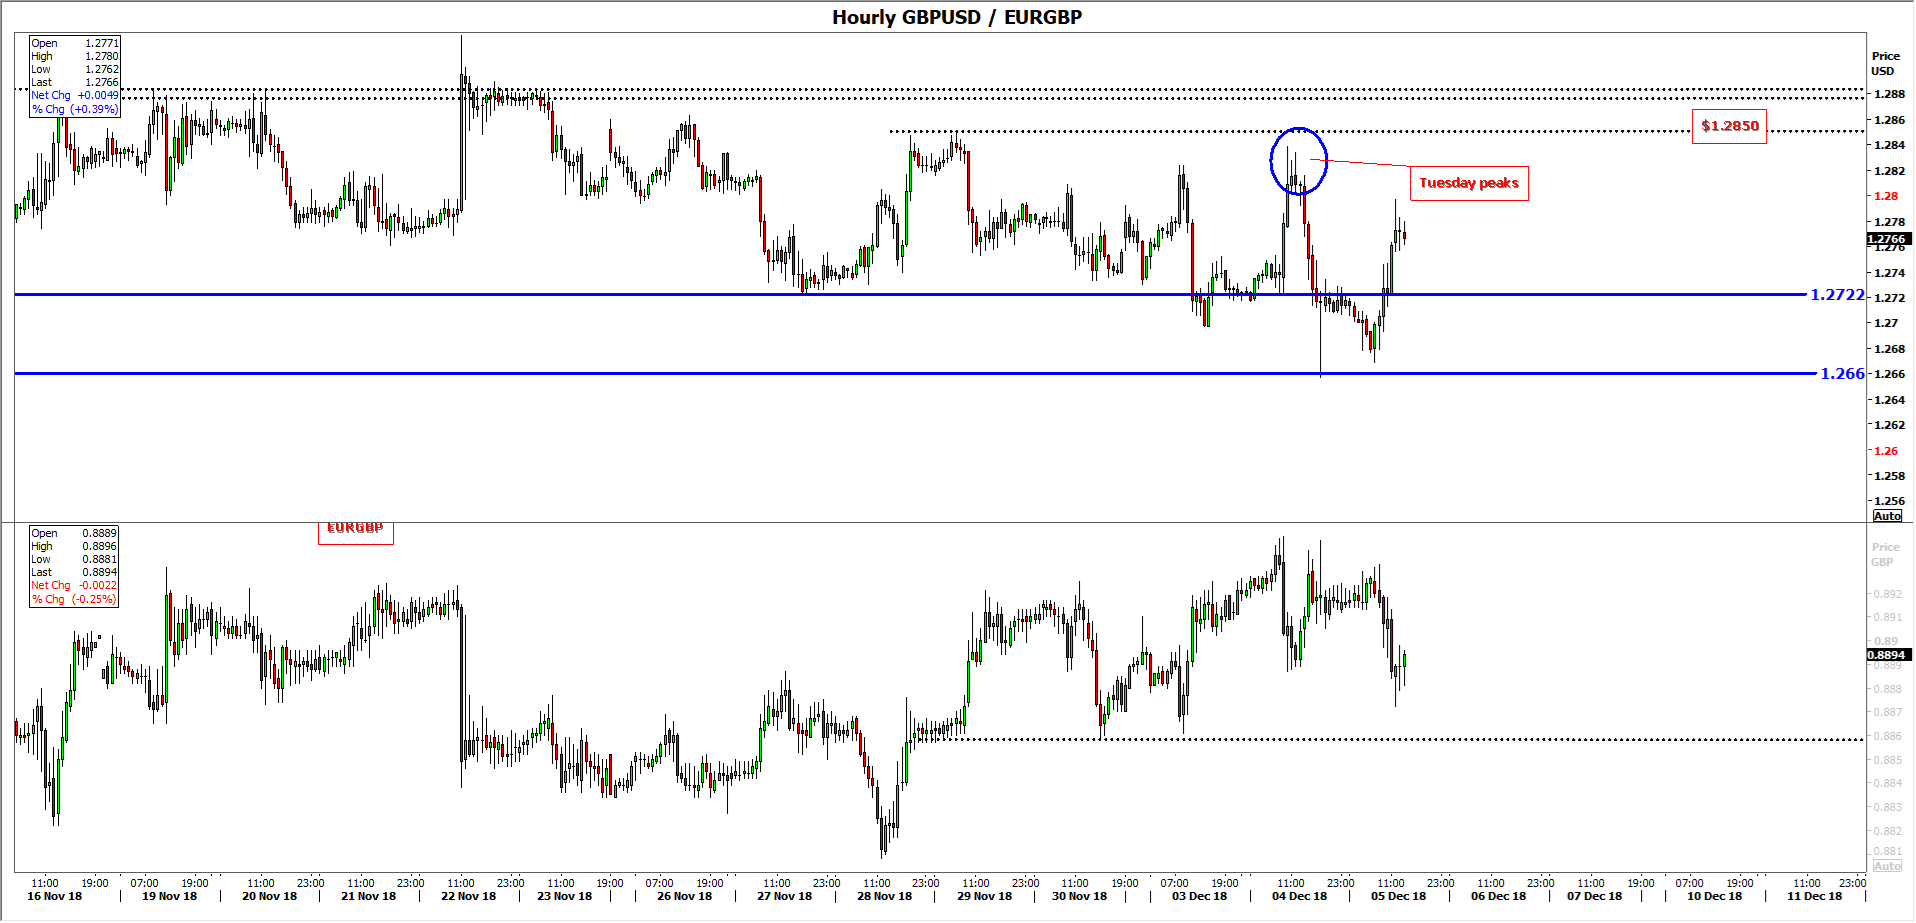 GBP/USD and EUR/GBP - Hourly